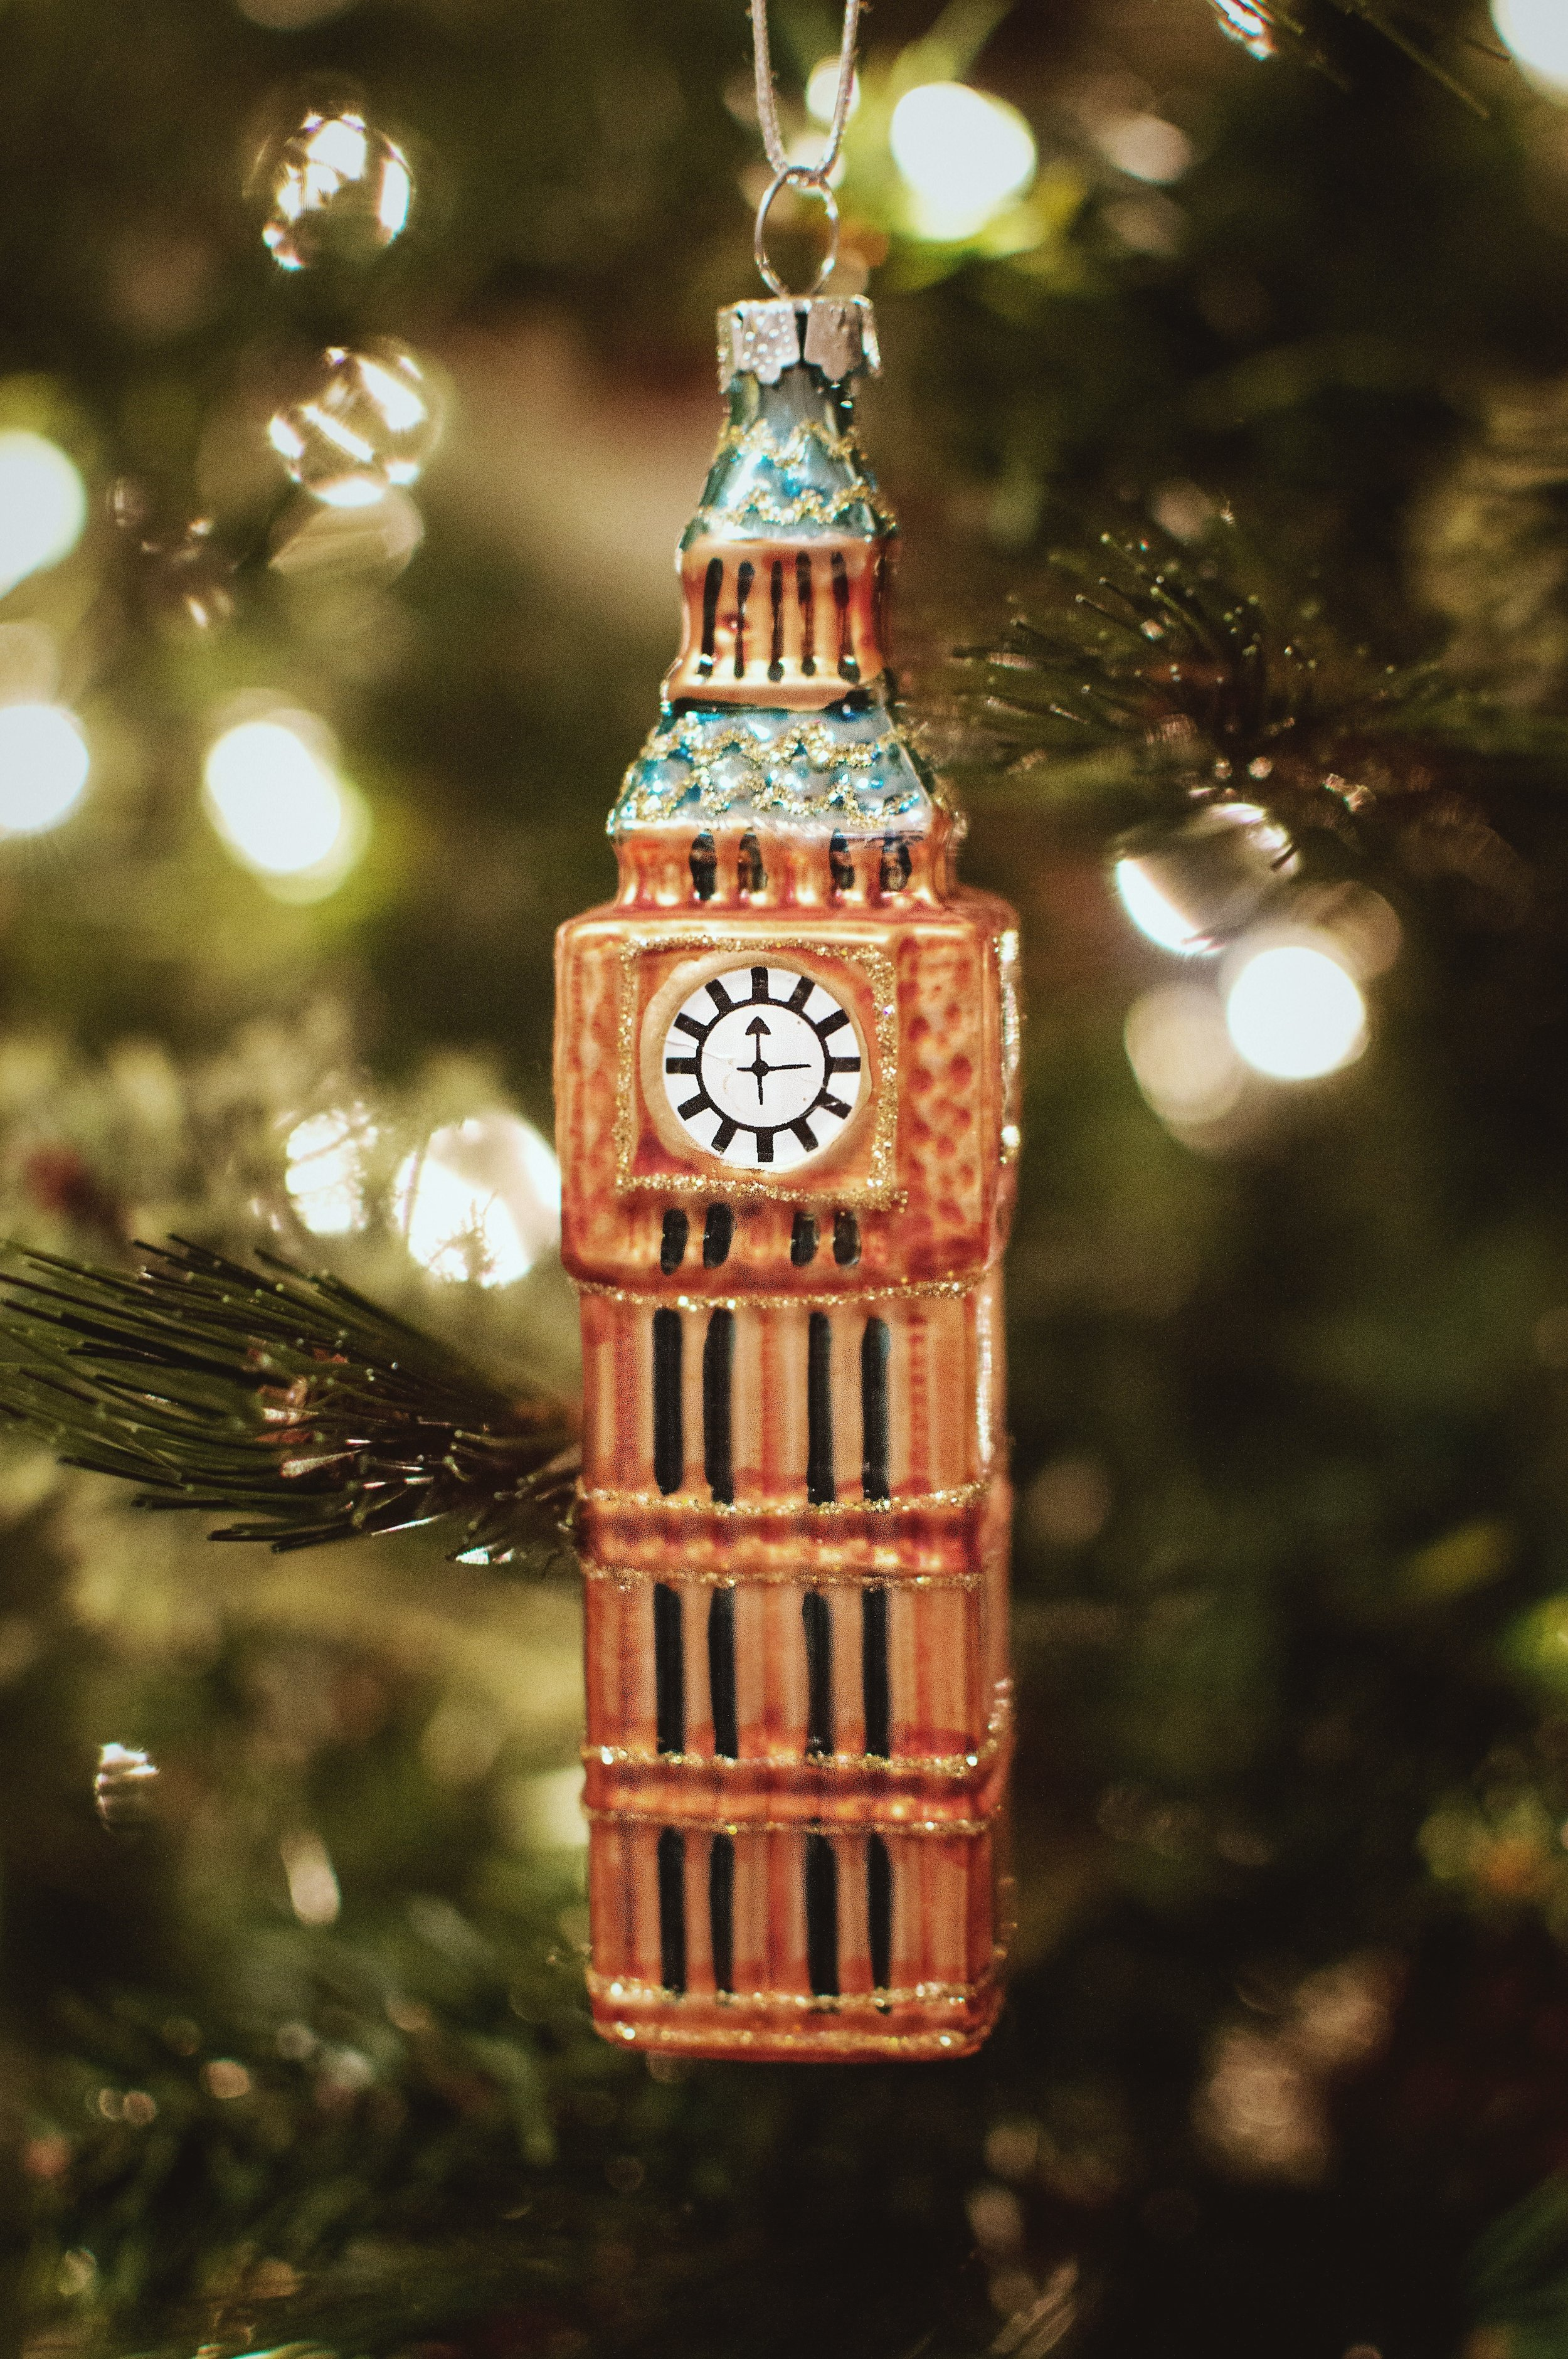 Big Ben. Purchased on our trip to London from a gift shop across the street. It's easily my most favorite landmark. The fact it survived TSA to get to the states in one piece earns it a spot on our tree.